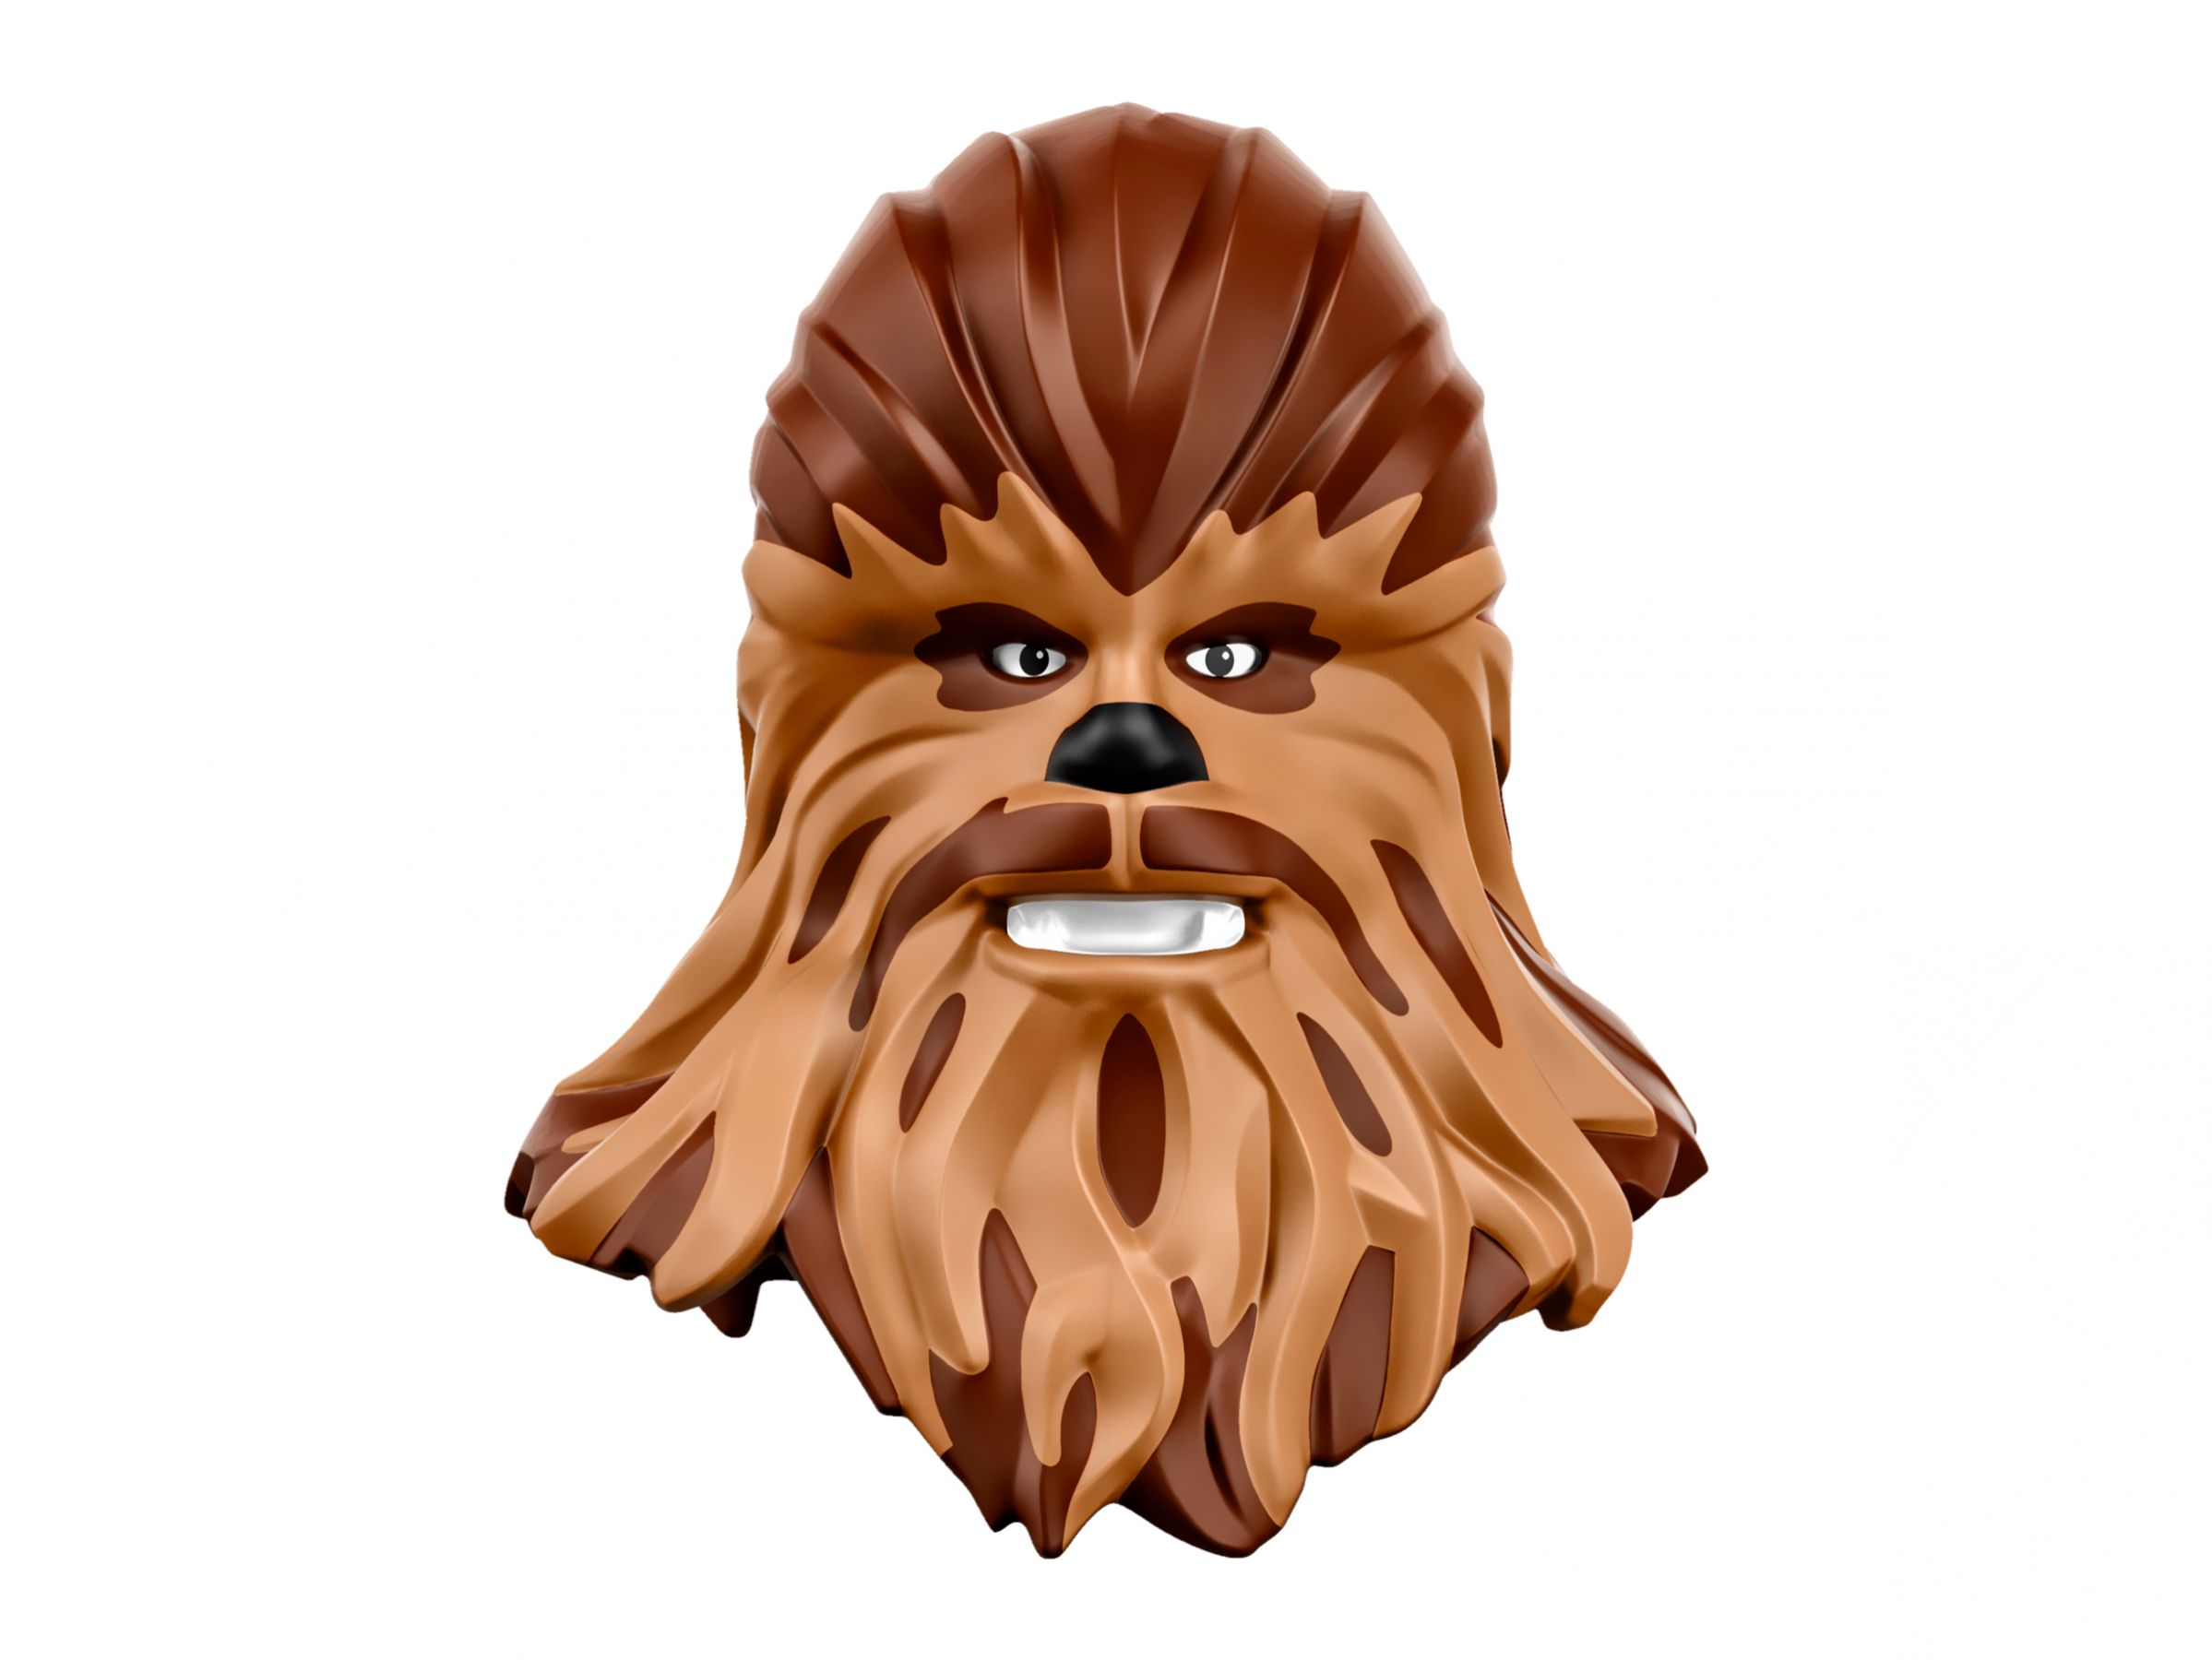 LEGO Star Wars Buildable Figures 75530 Chewbacca™ LEGO_75530_alt3.jpg